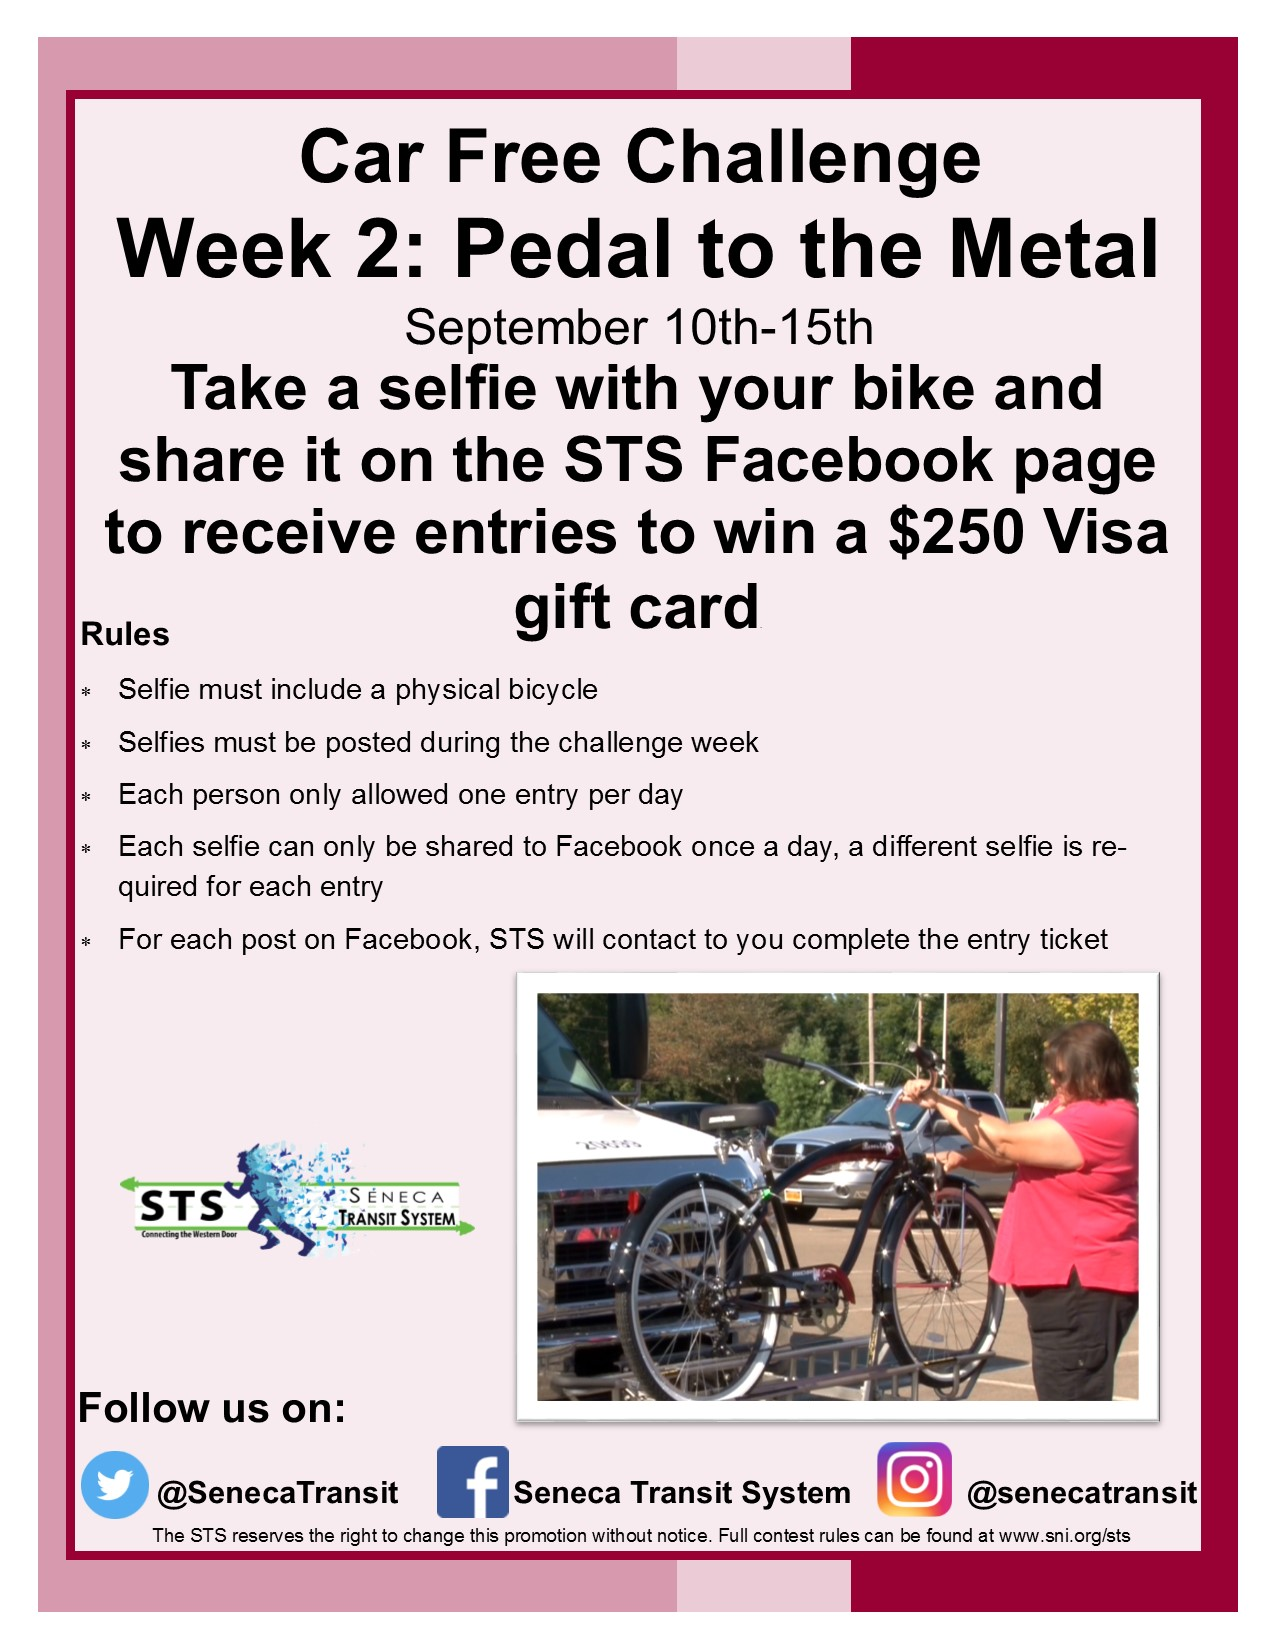 Seneca Transit Promo - Pedal to the Metal from September 10th - 15th.